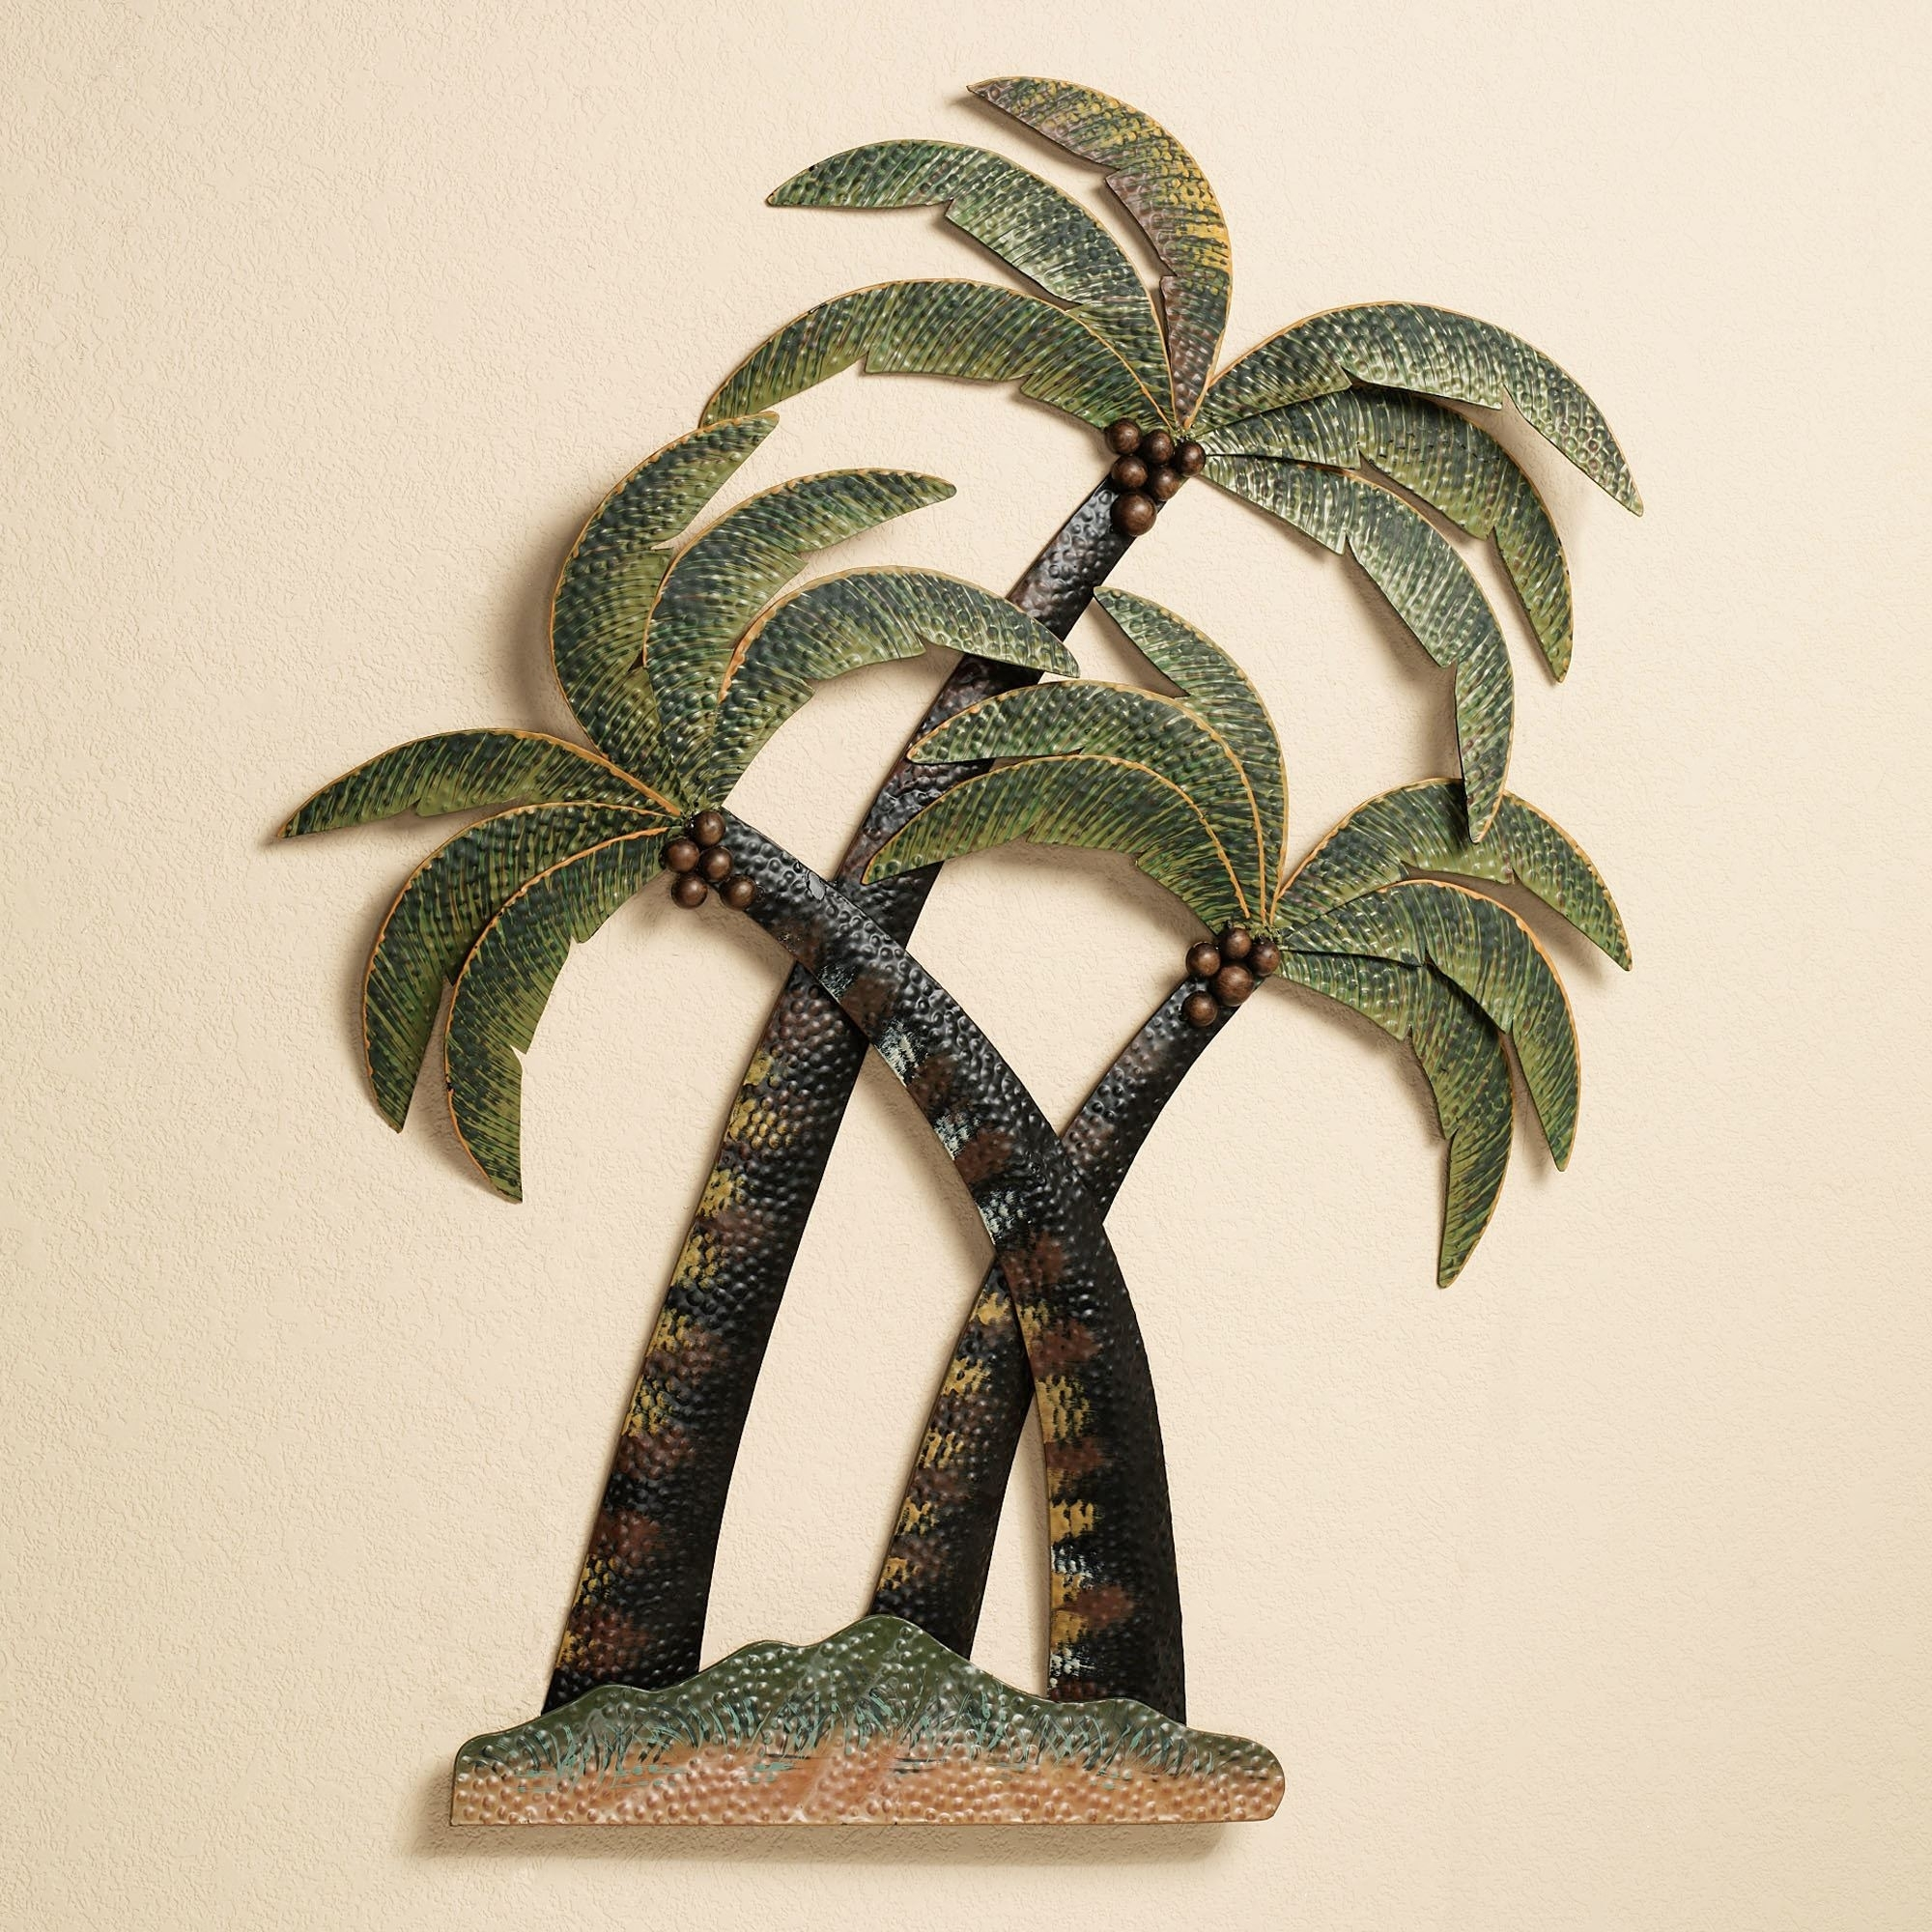 Coco Palm Tree Metal Wall Sculpture With Recent Palm Tree Wall Art (View 7 of 20)